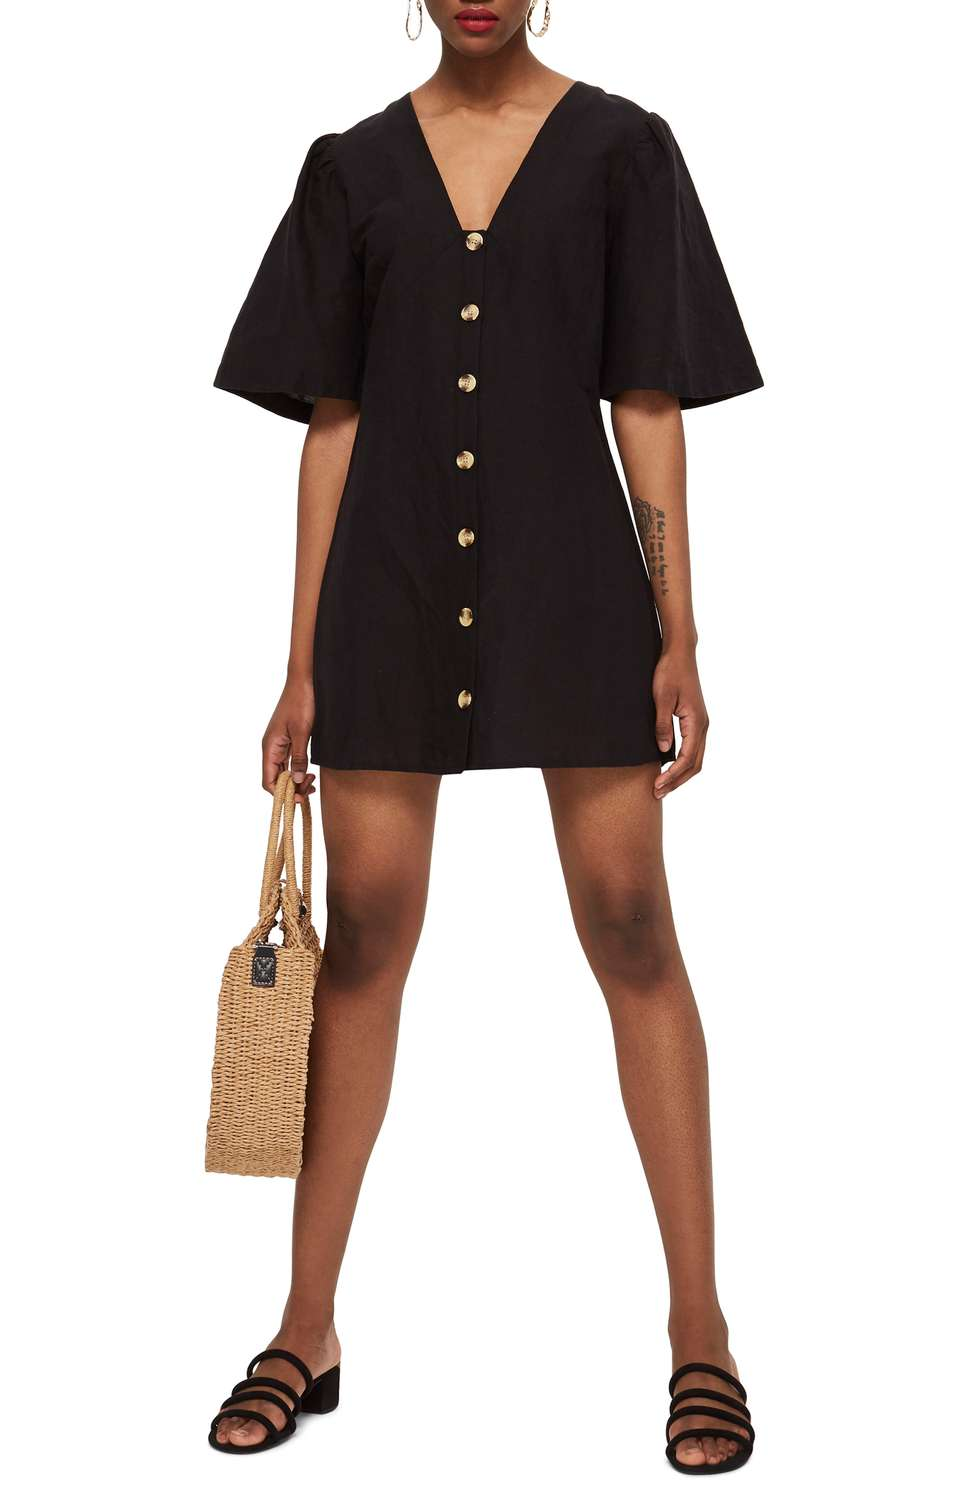 topshop button dress.jpg